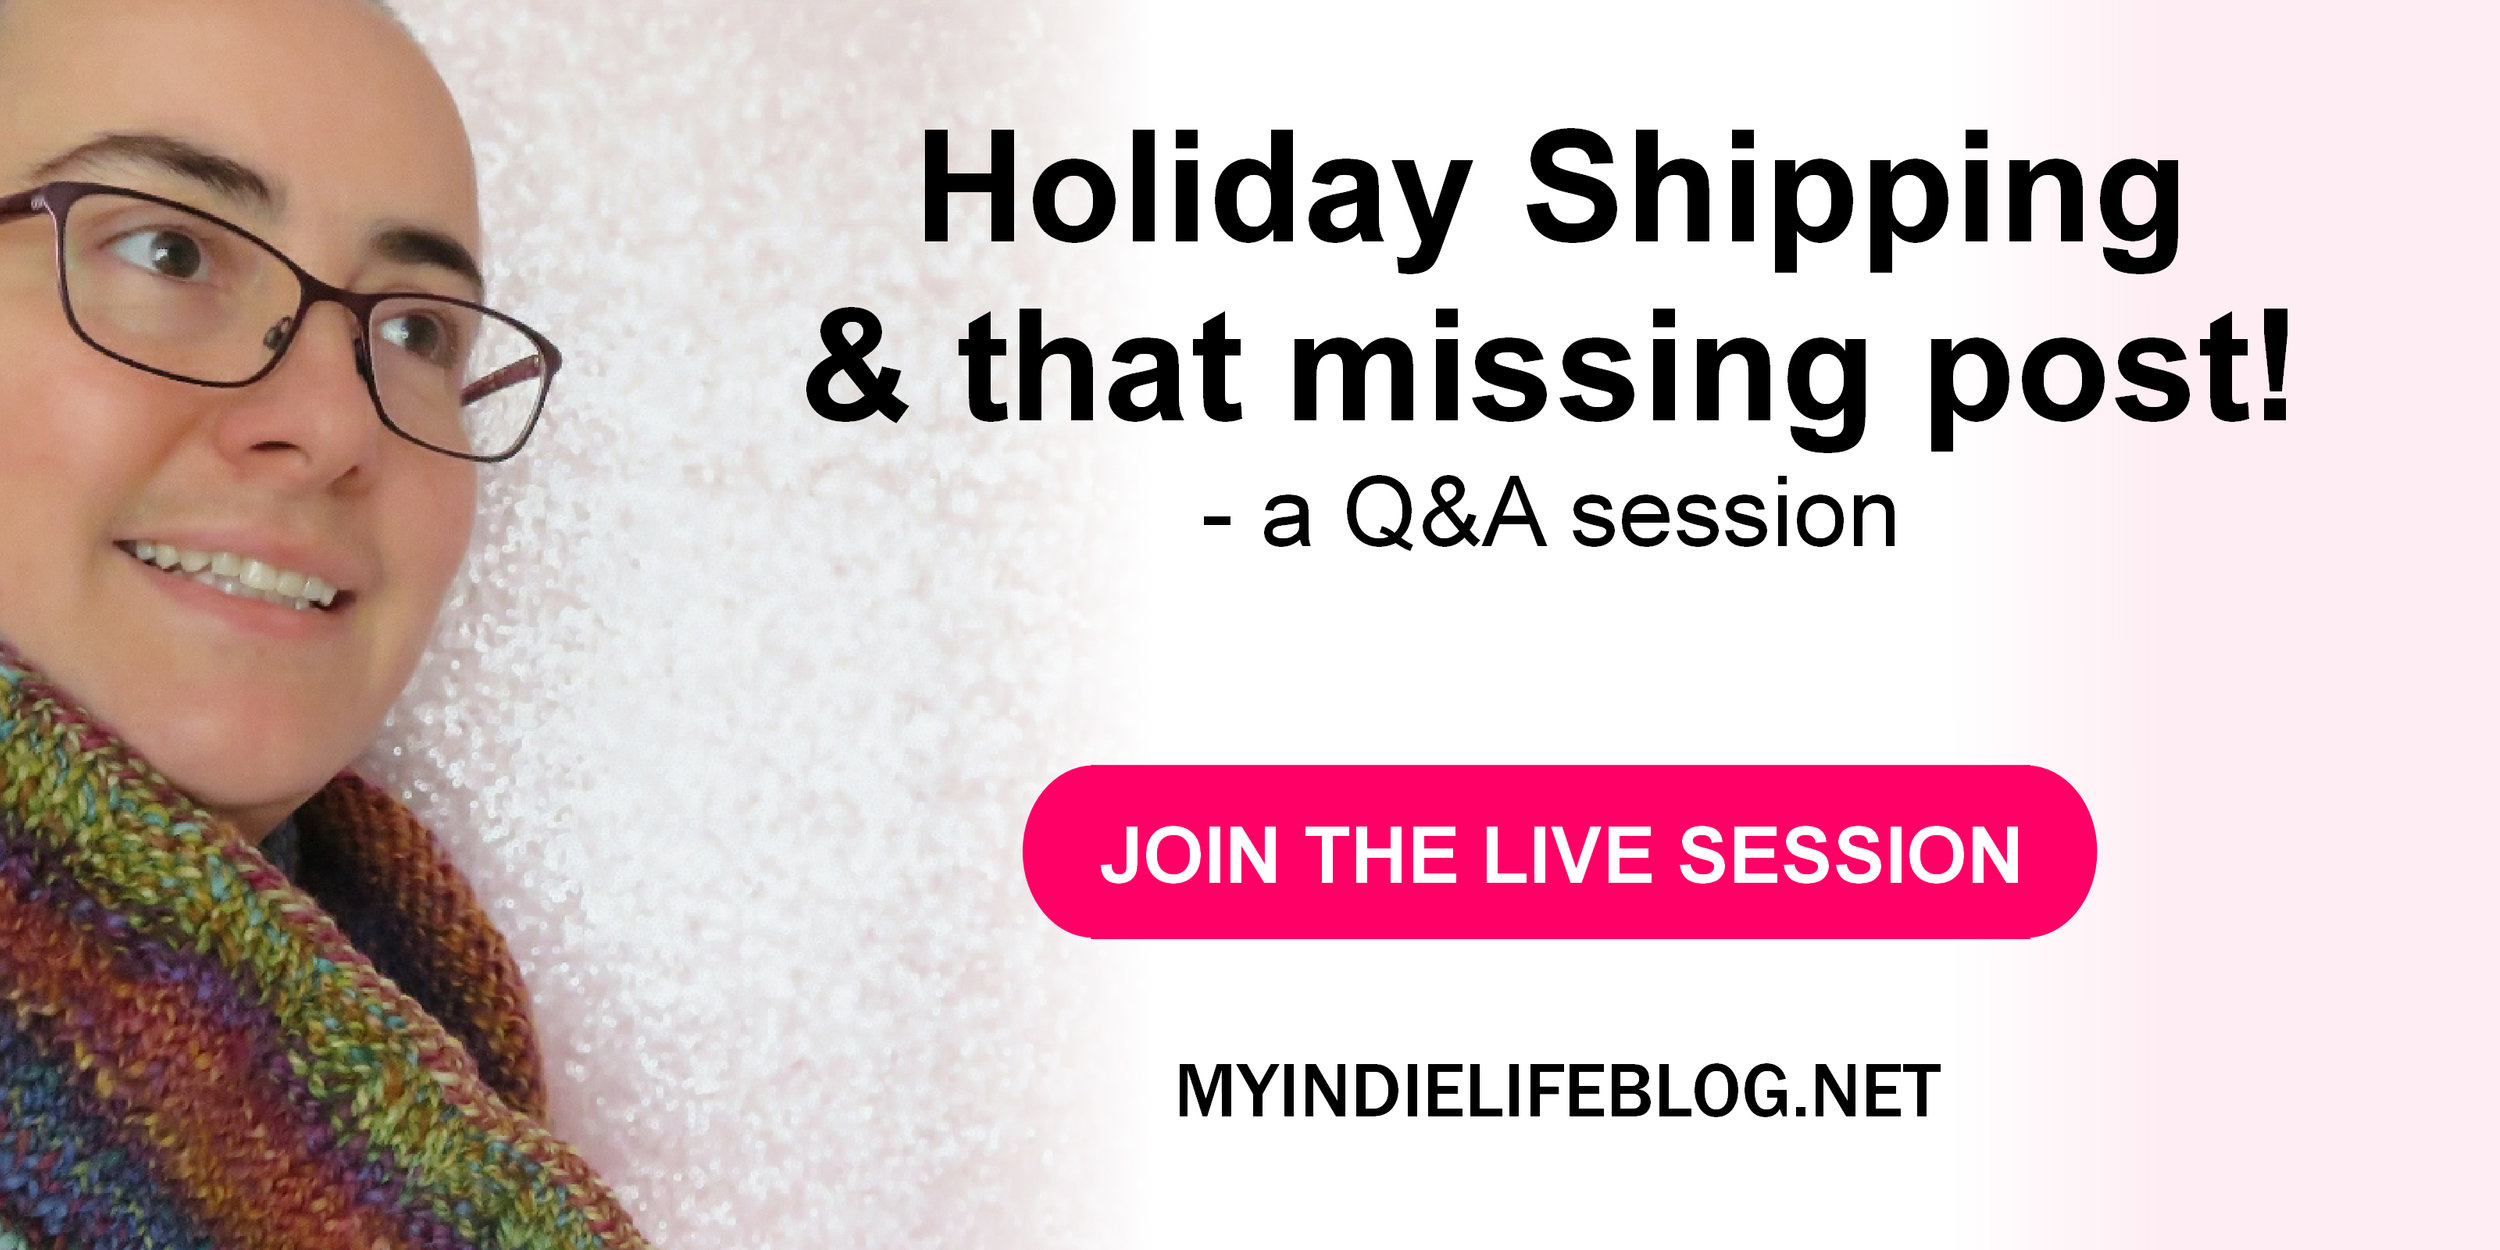 holiday shipping & that missing post!.jpg